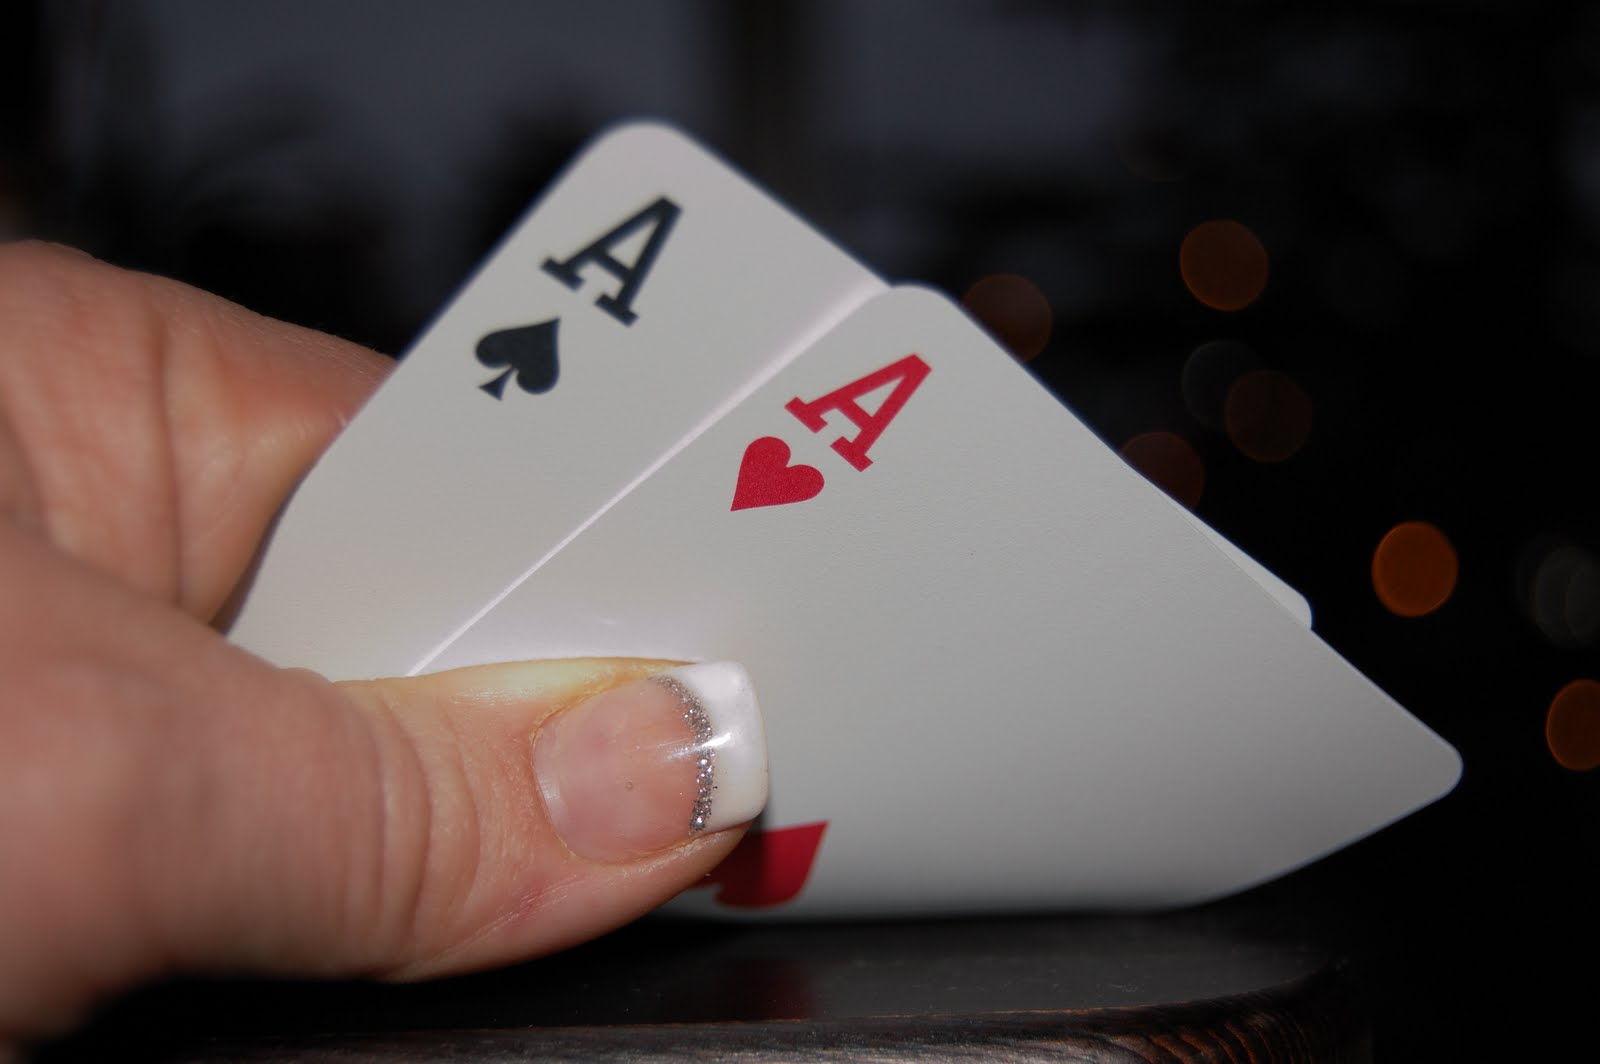 wallpaper atole: Hd Wallpaper Poker